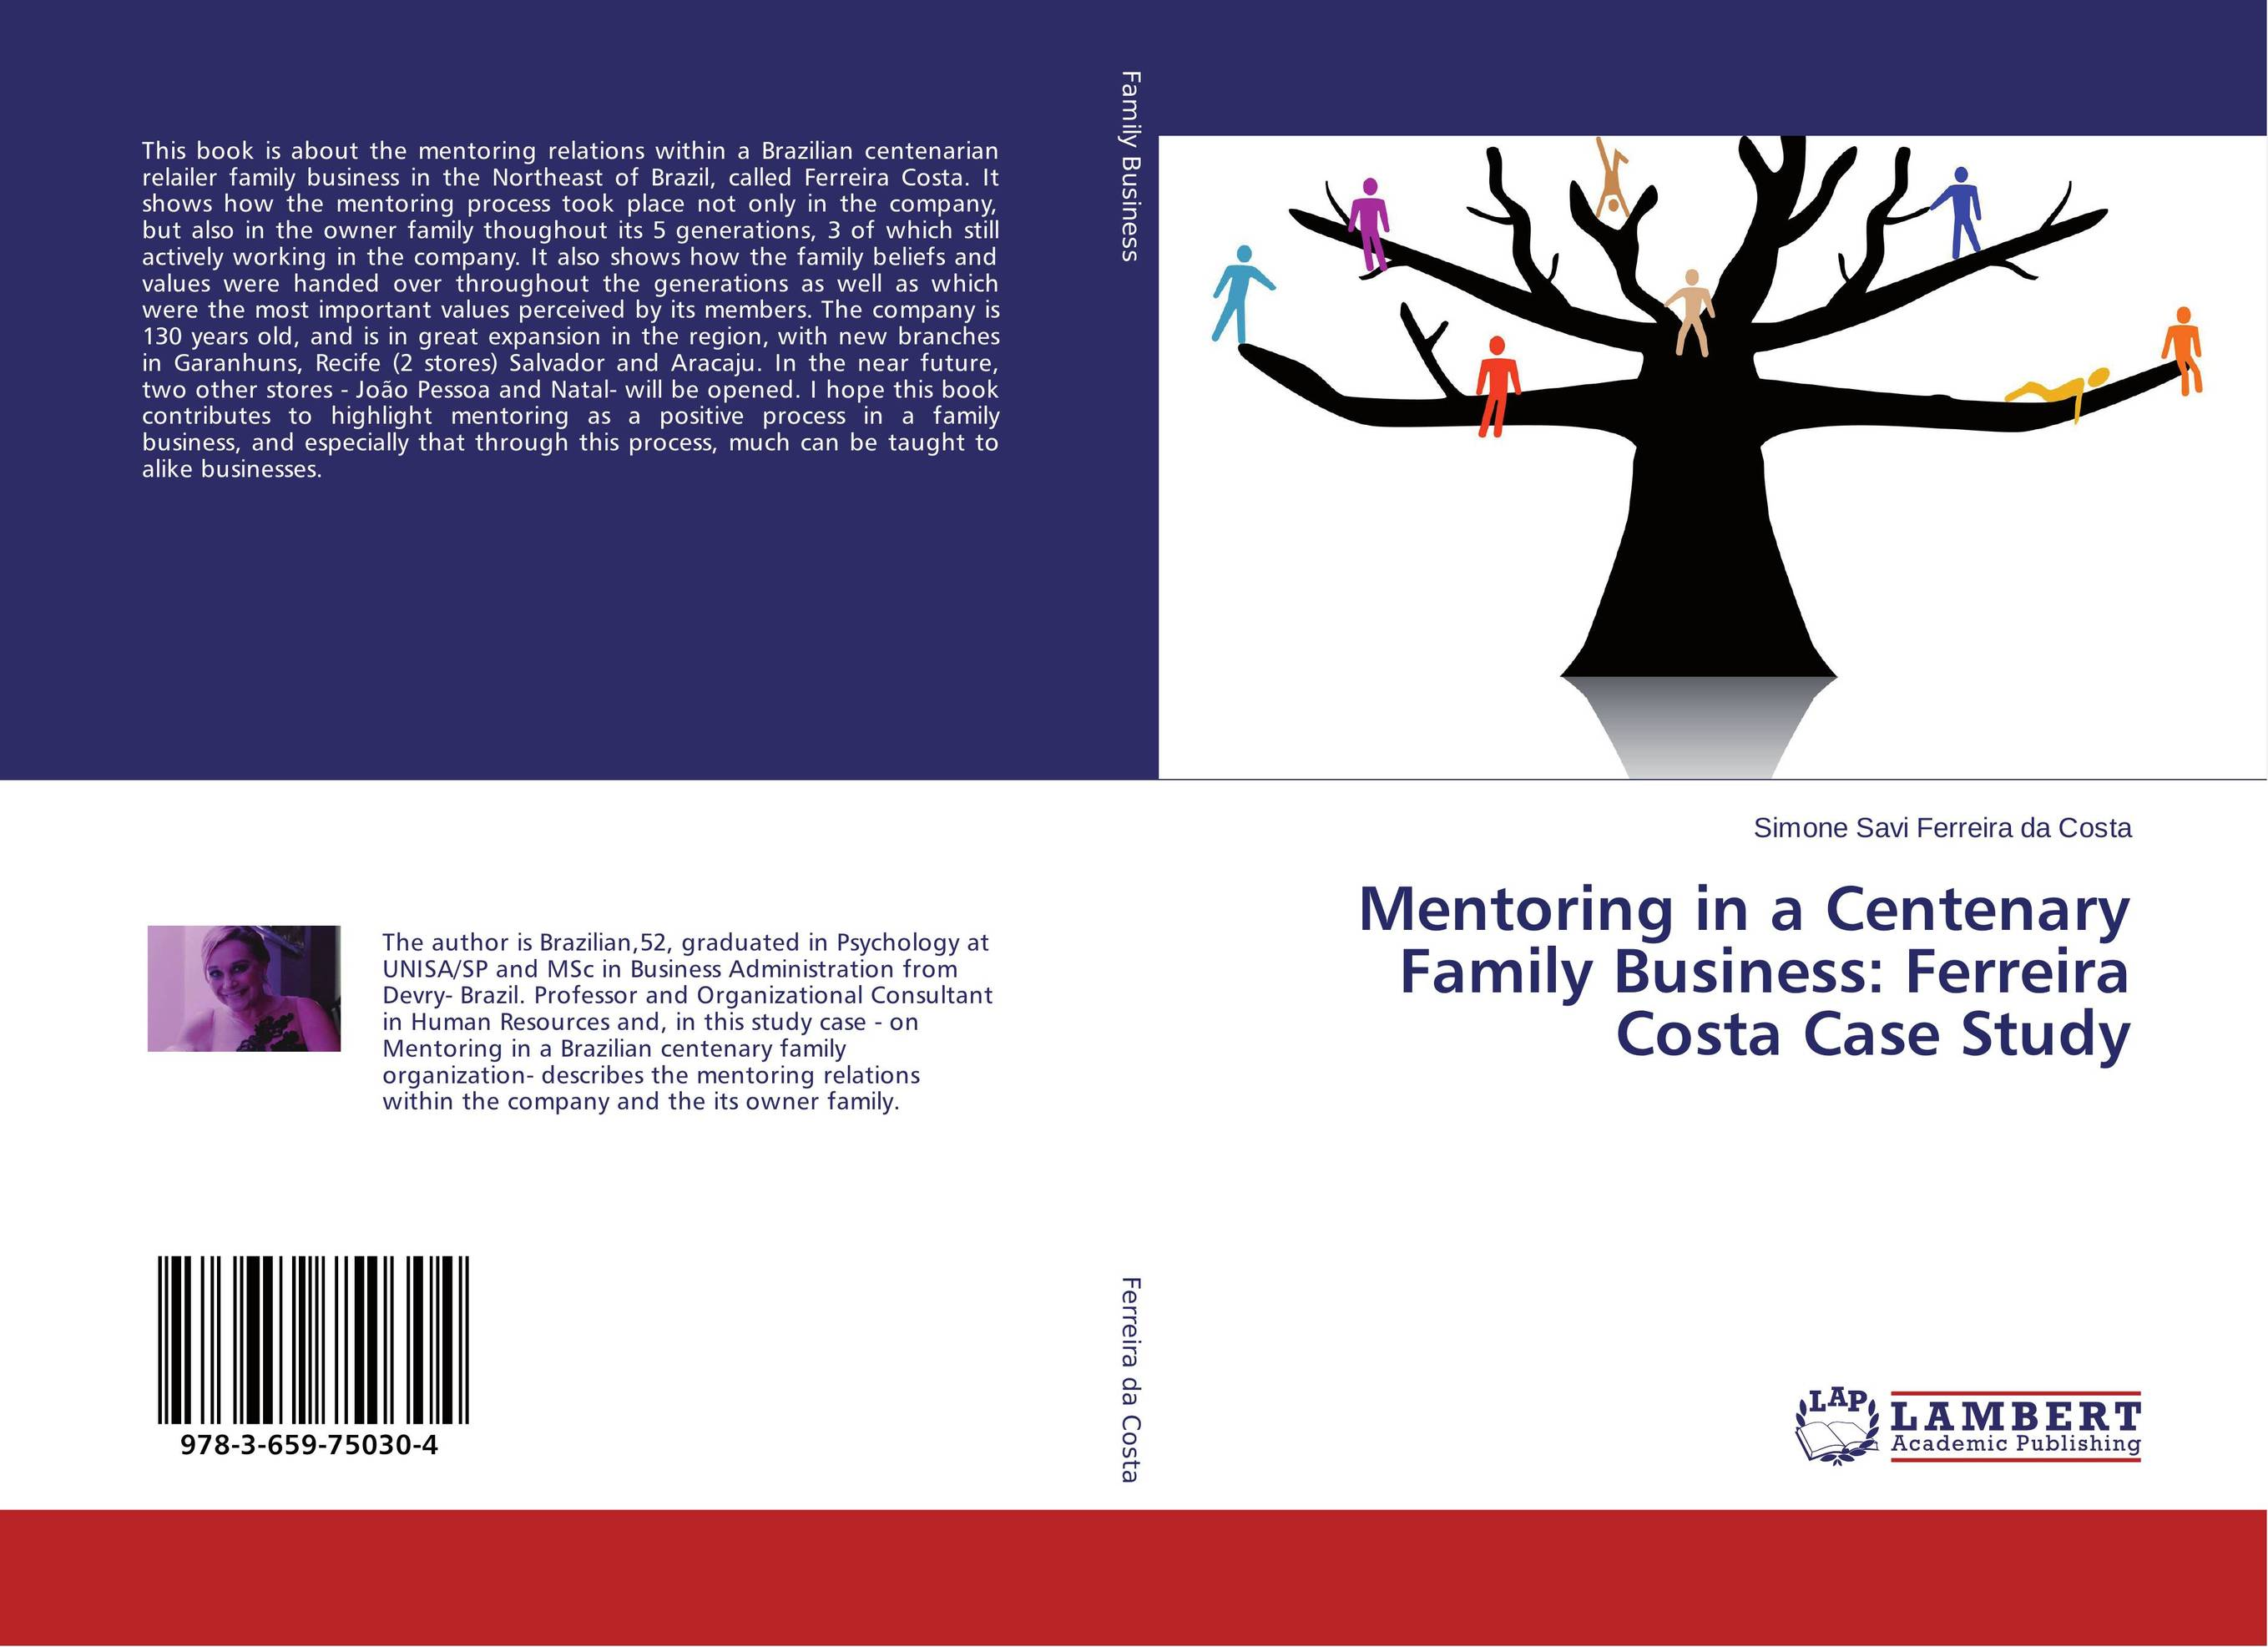 Mentoring in a Centenary Family Business: Ferreira Costa Case Study changing attitude of family towards women in family business